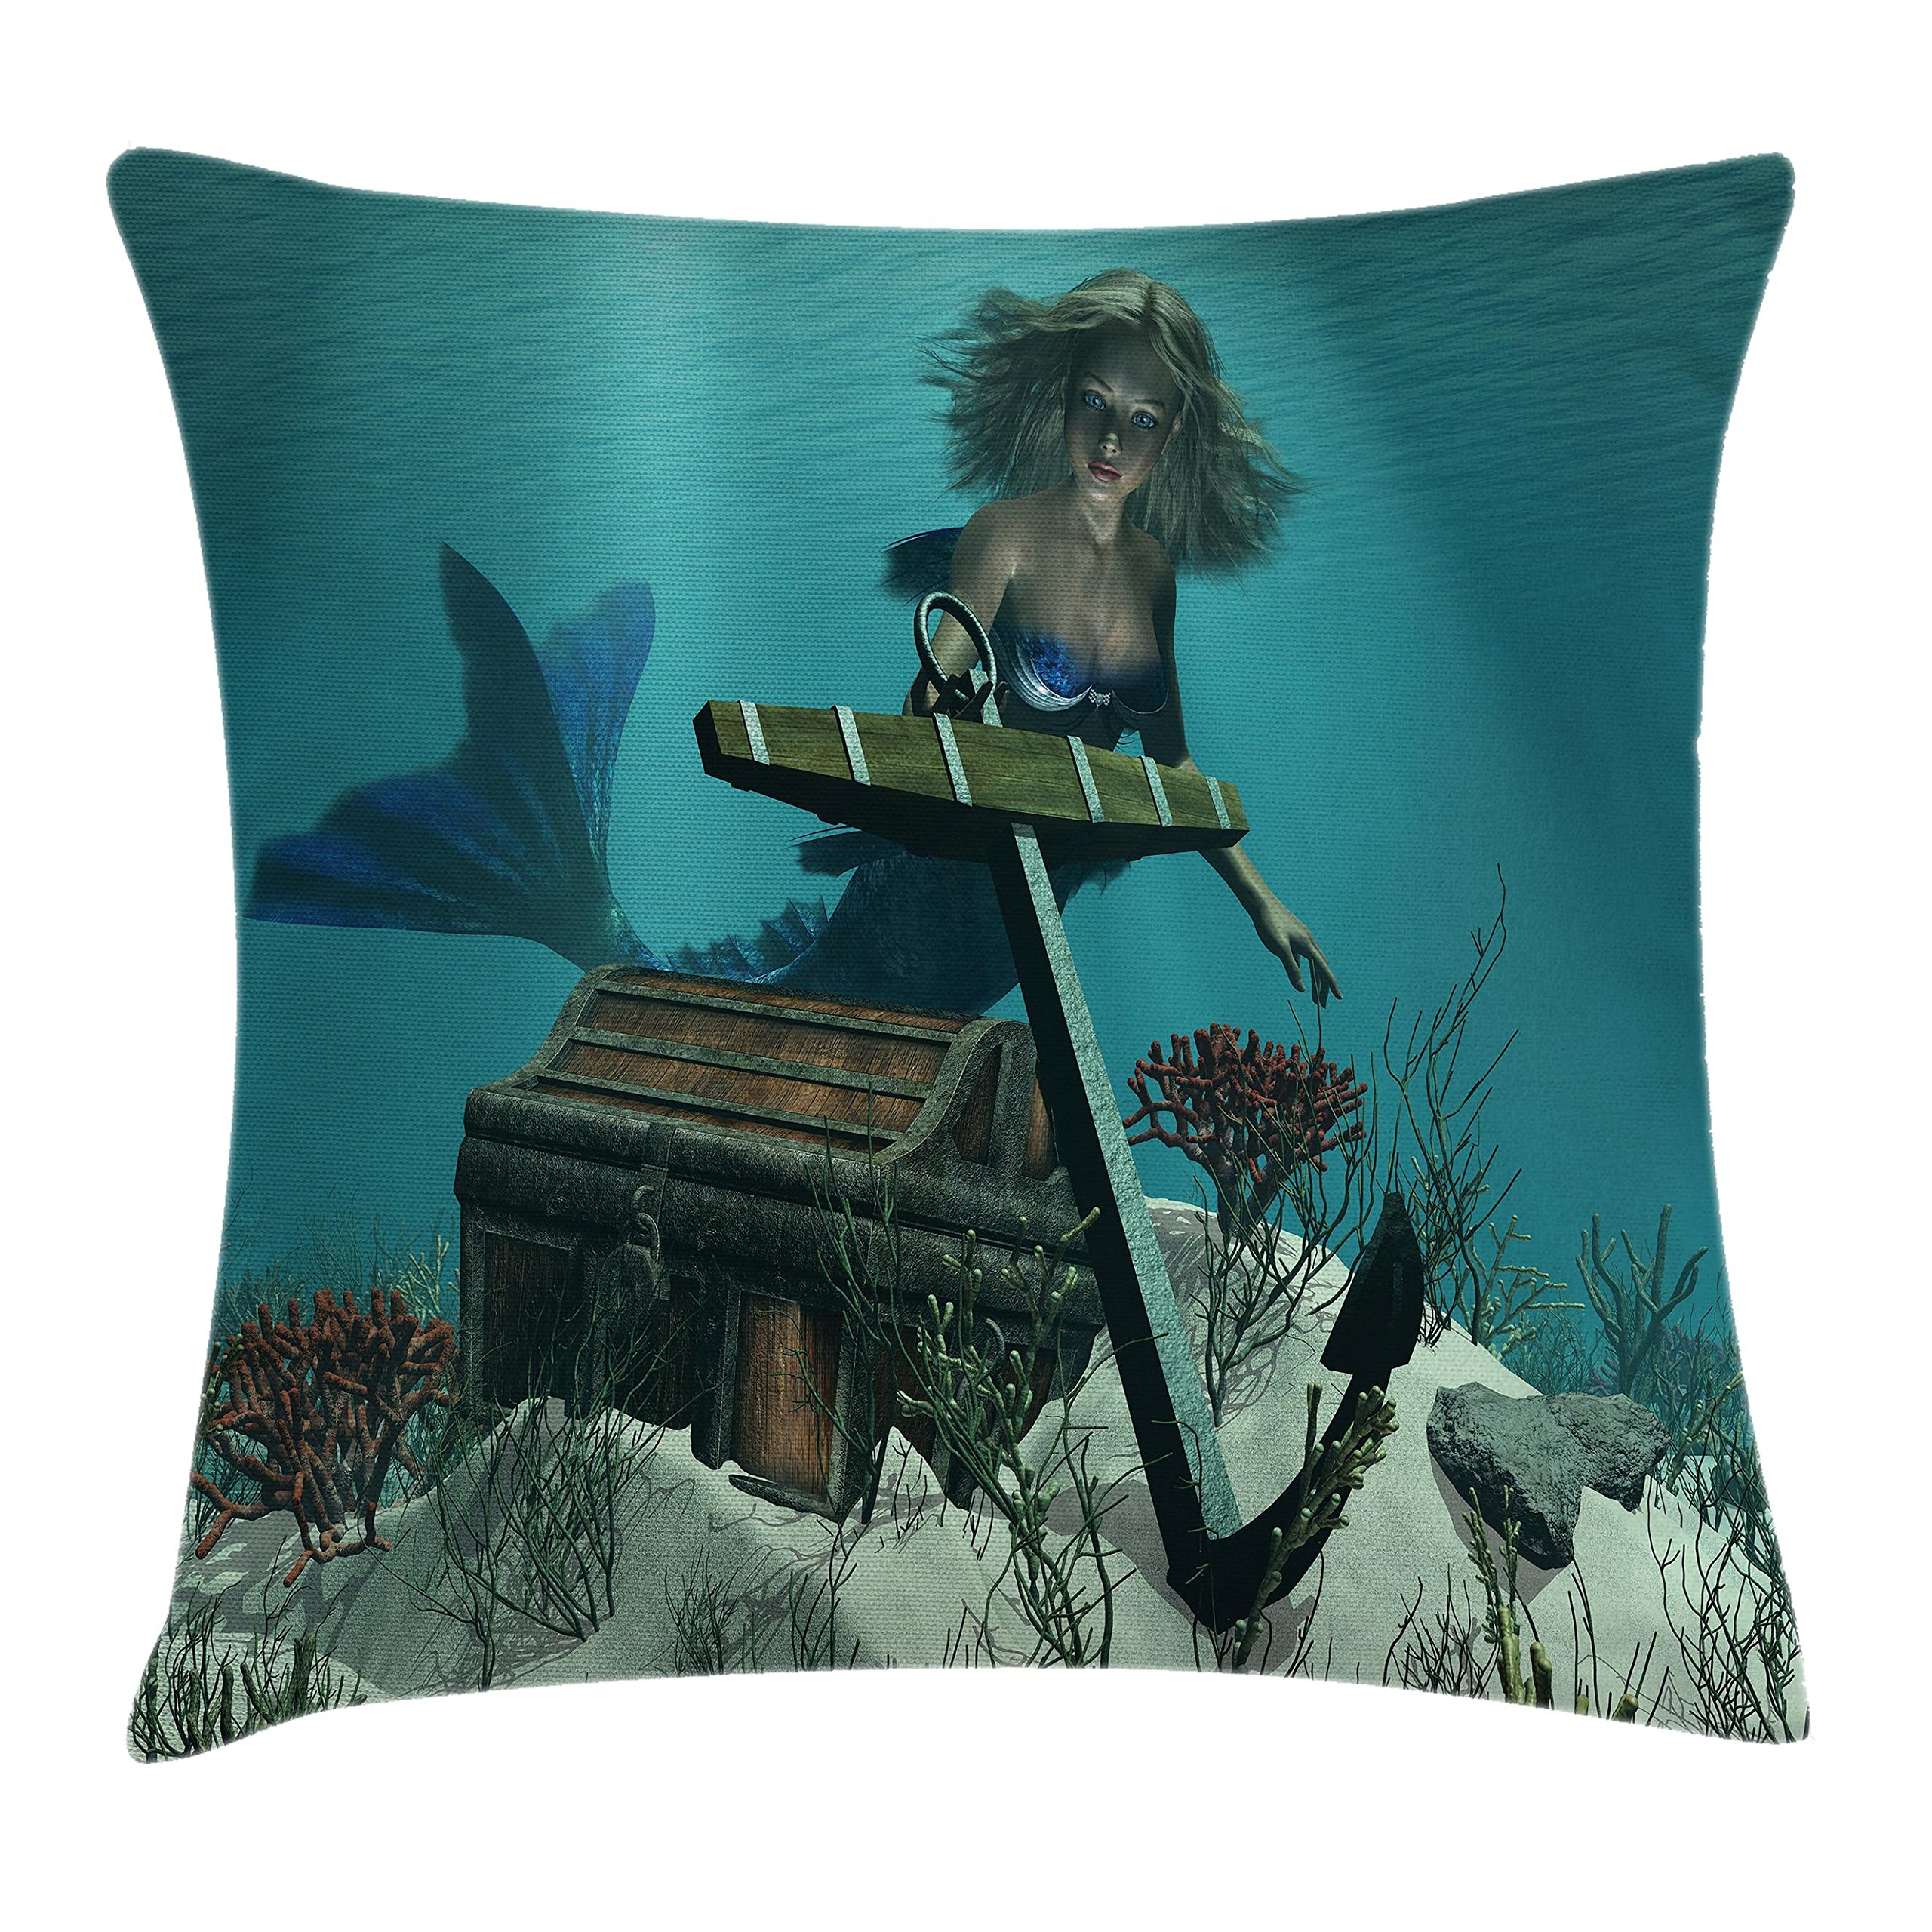 Ambesonne Kids Throw Pillow Cushion Cover, A Mermaid in Ocean Sea Discovering Pirate's Treasure Chest Mythical Art Print, Decorative Square Accent Pillow Case, 16 X 16 inches, Azure Brown Cream